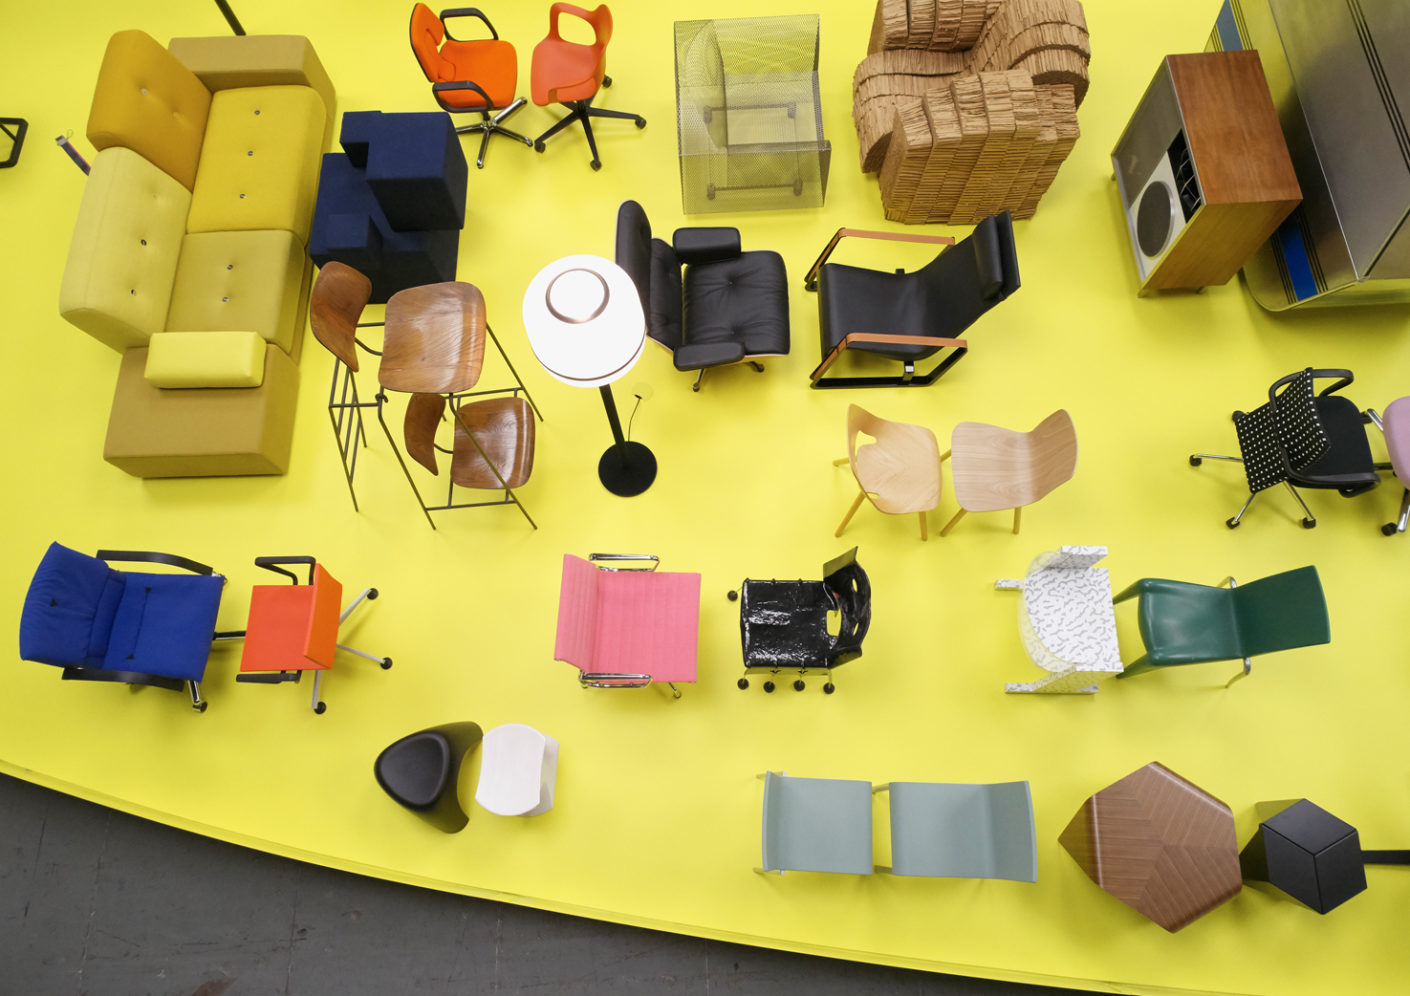 Talk among furniture: Stadler sorts the Vitra range as social beings with character, attitudes and spleens.